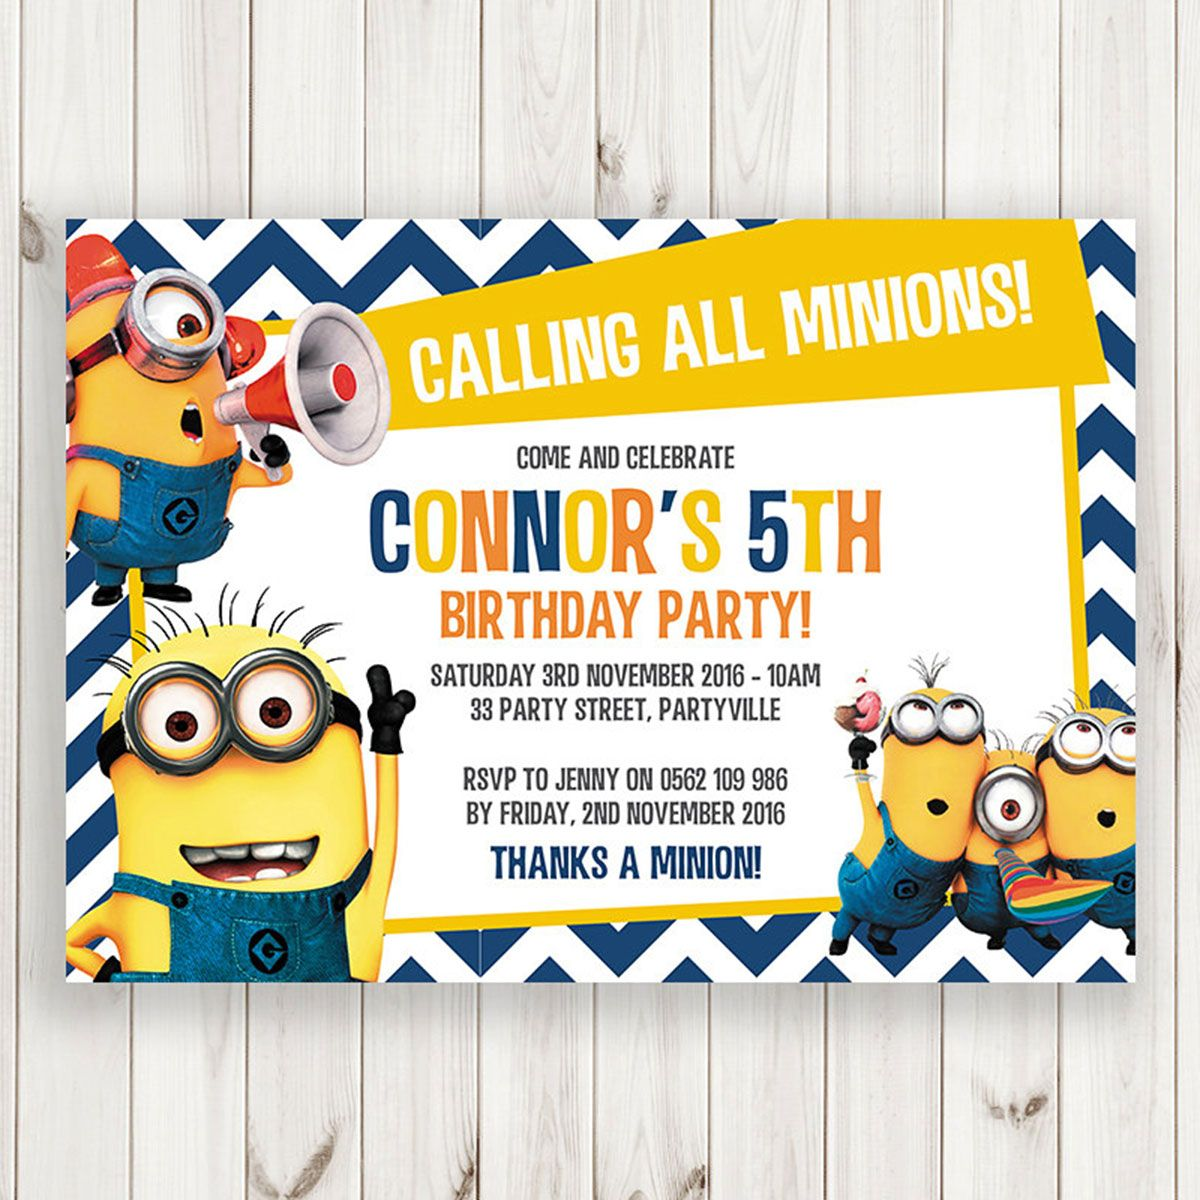 Printable Blue Chevron Calling All Minions Birthday Invitation - Minions birthday invitation template